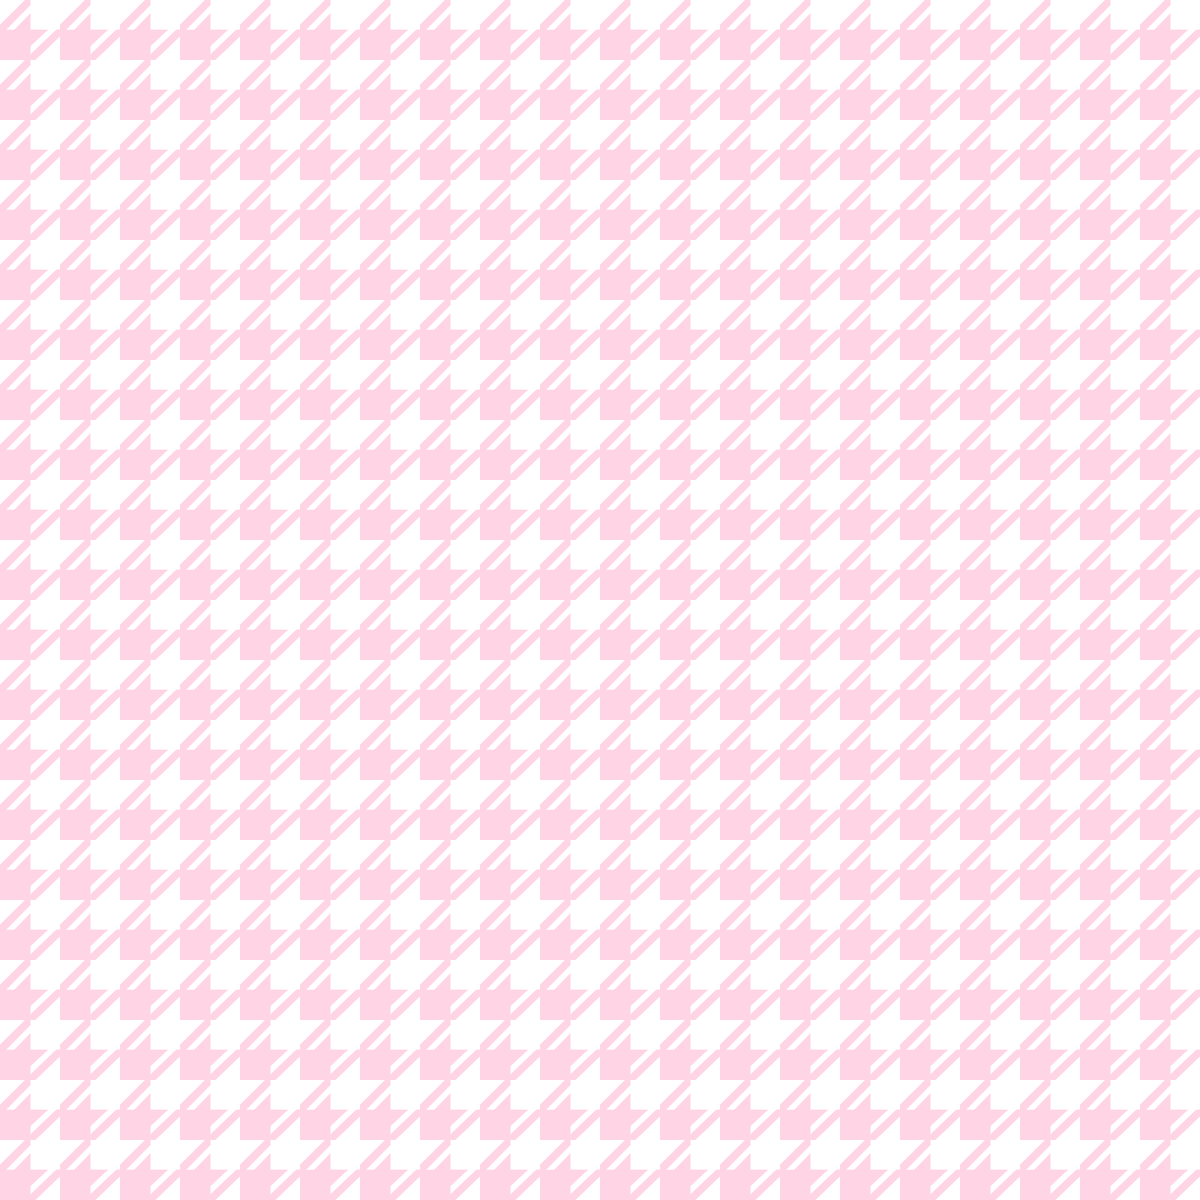 FREE printable dogtooth checkered pattern paper